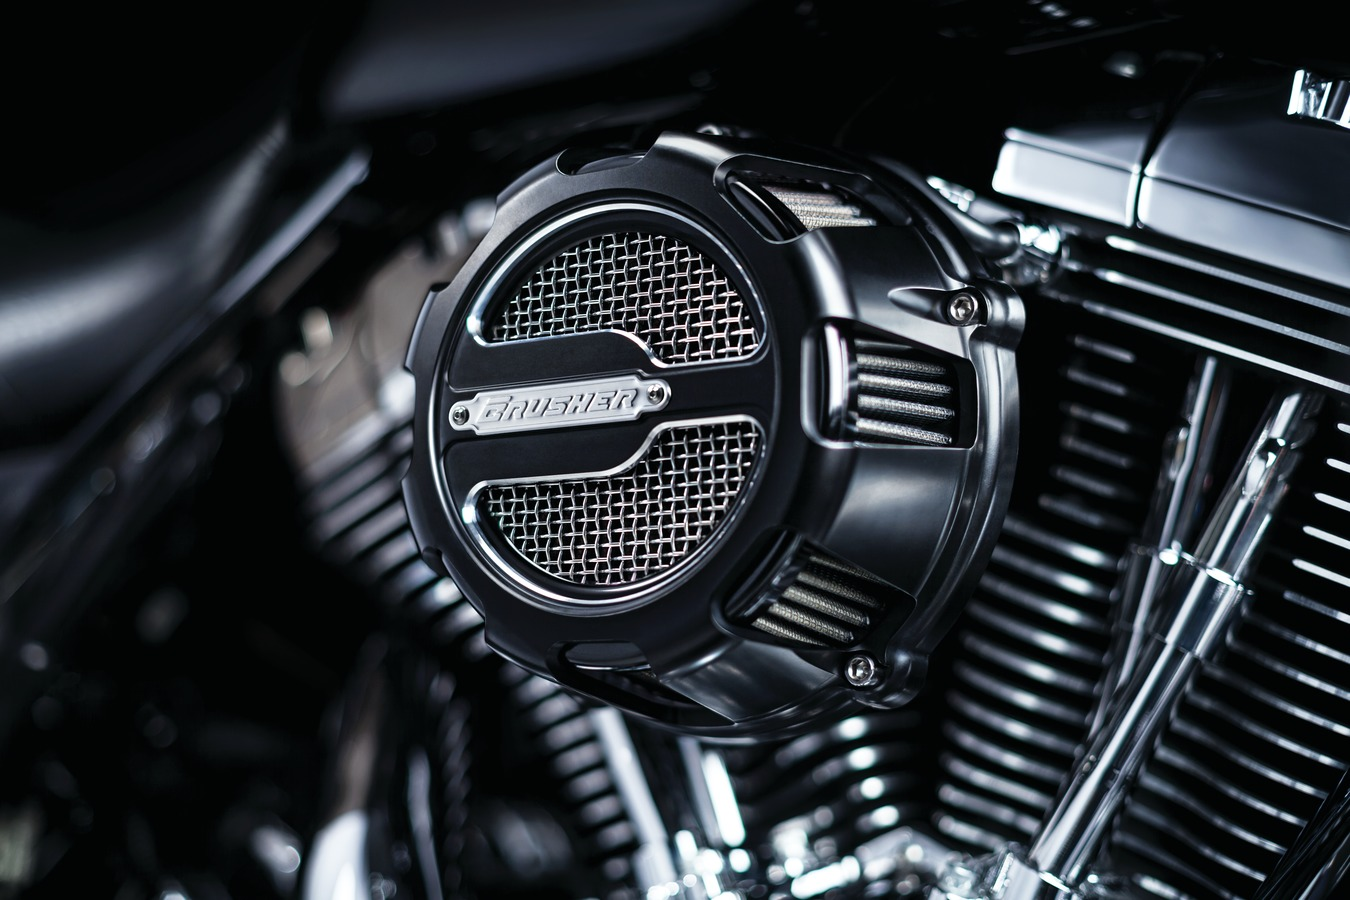 crusher maverick air cleaner for harley davidsons now available. Black Bedroom Furniture Sets. Home Design Ideas